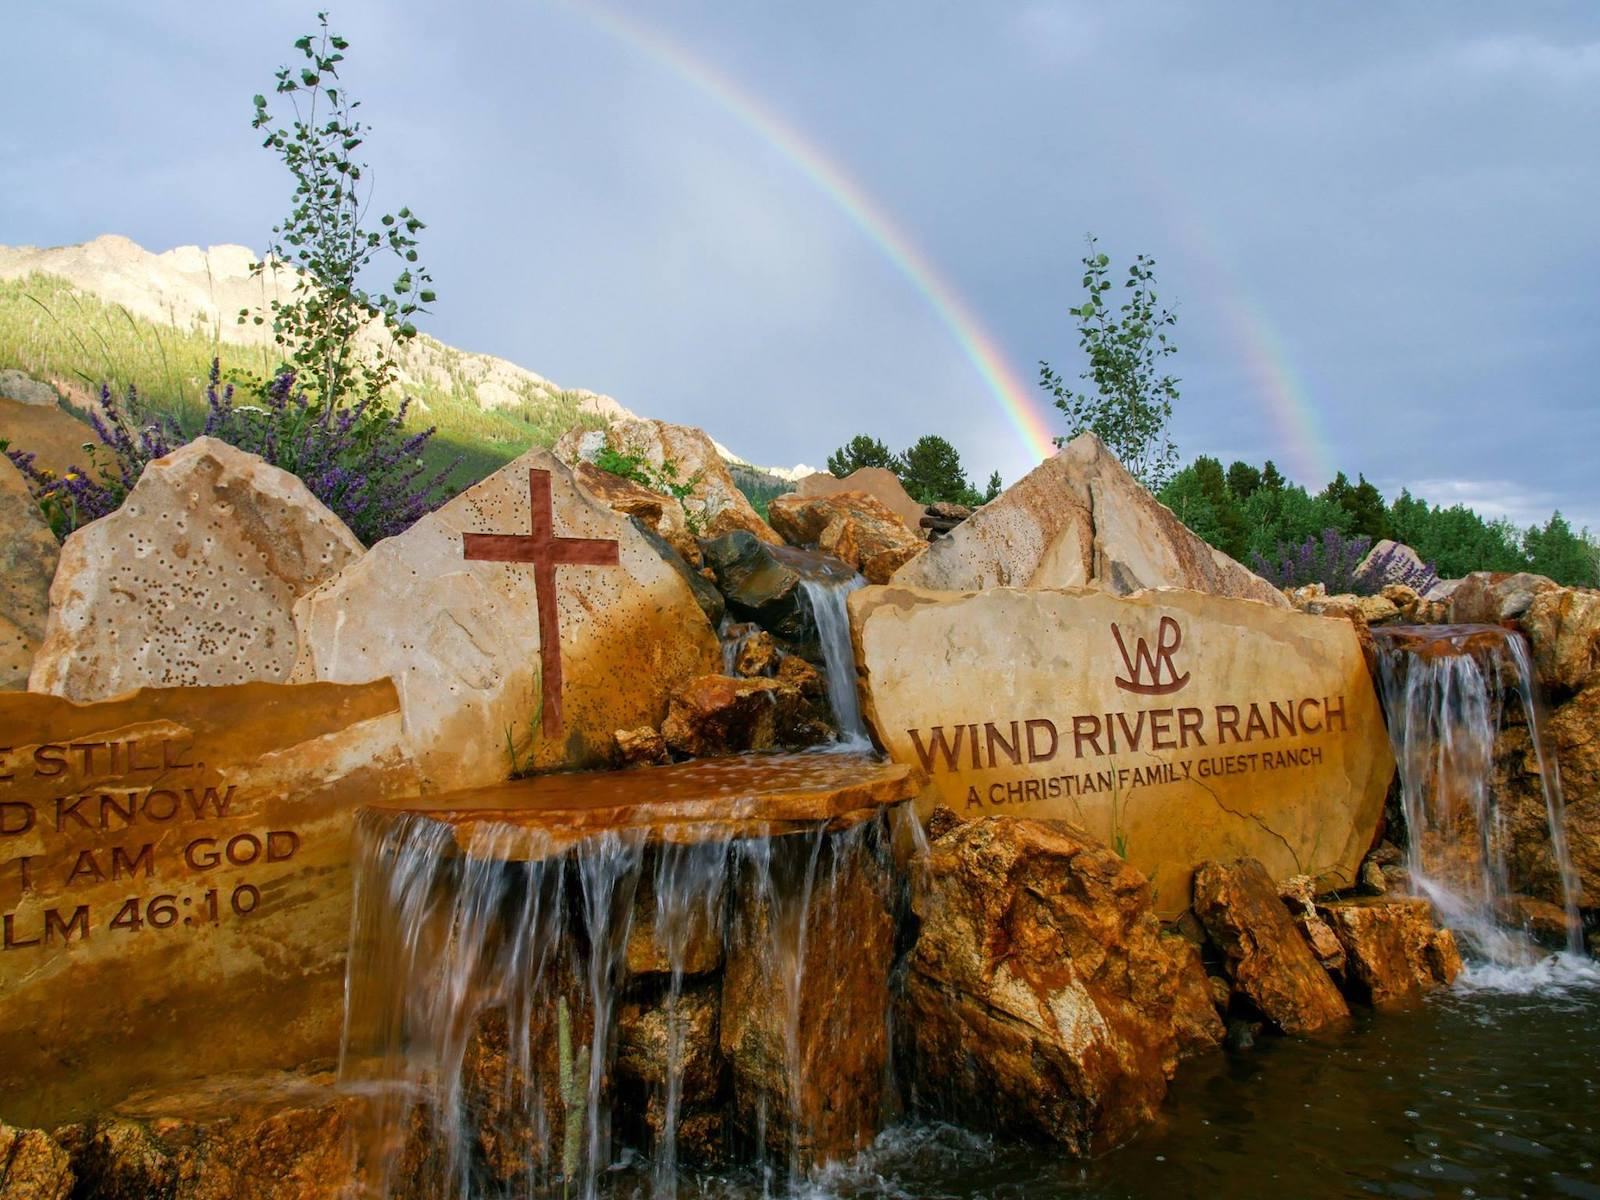 Image of the Wind River Ranch sign carved into a stone waterfall